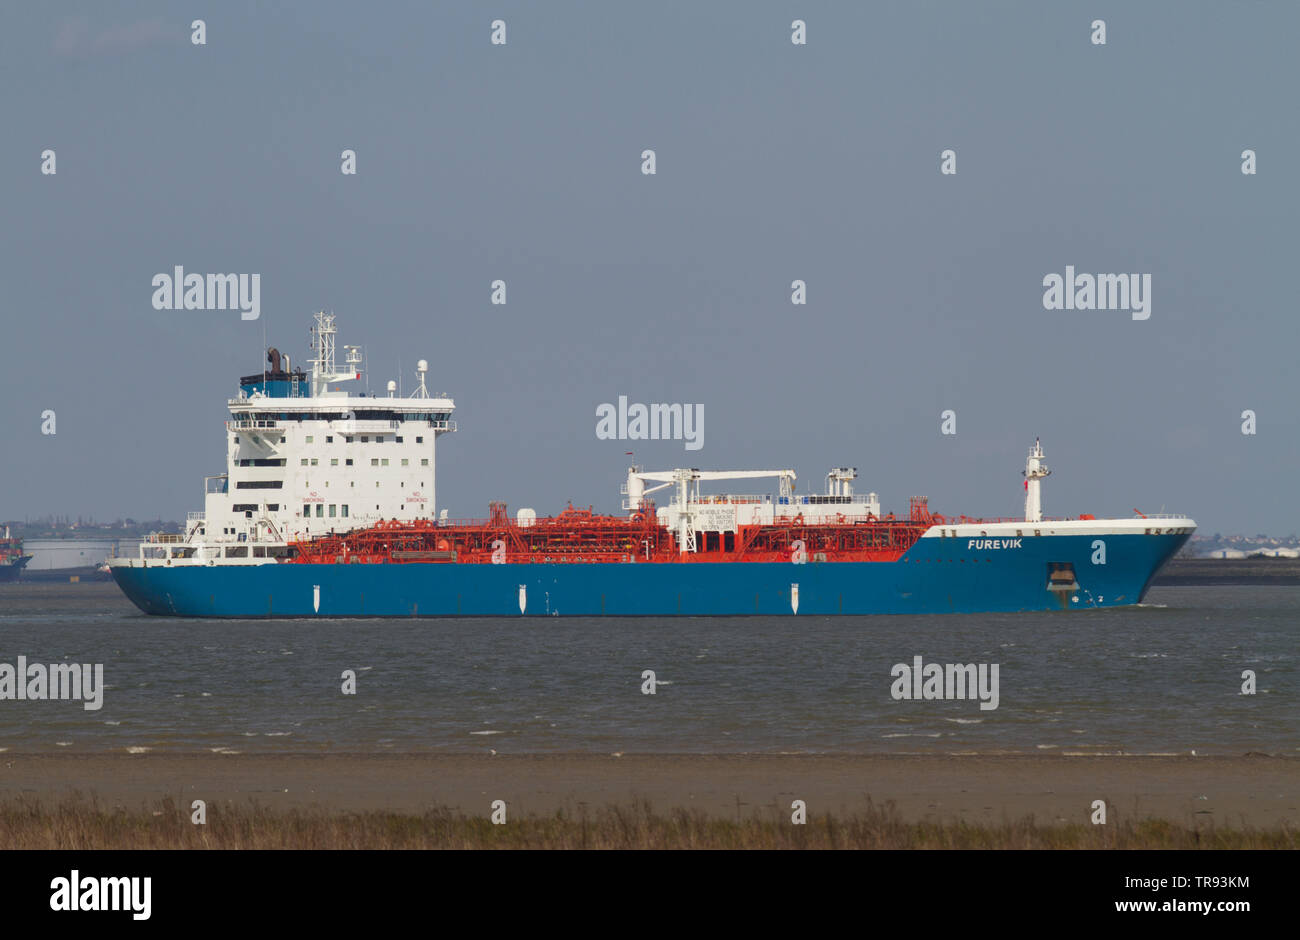 The Furevik which is an oil/chemical tanker ship sailing in the Thames Estuary near Tilbury in Essex. - Stock Image